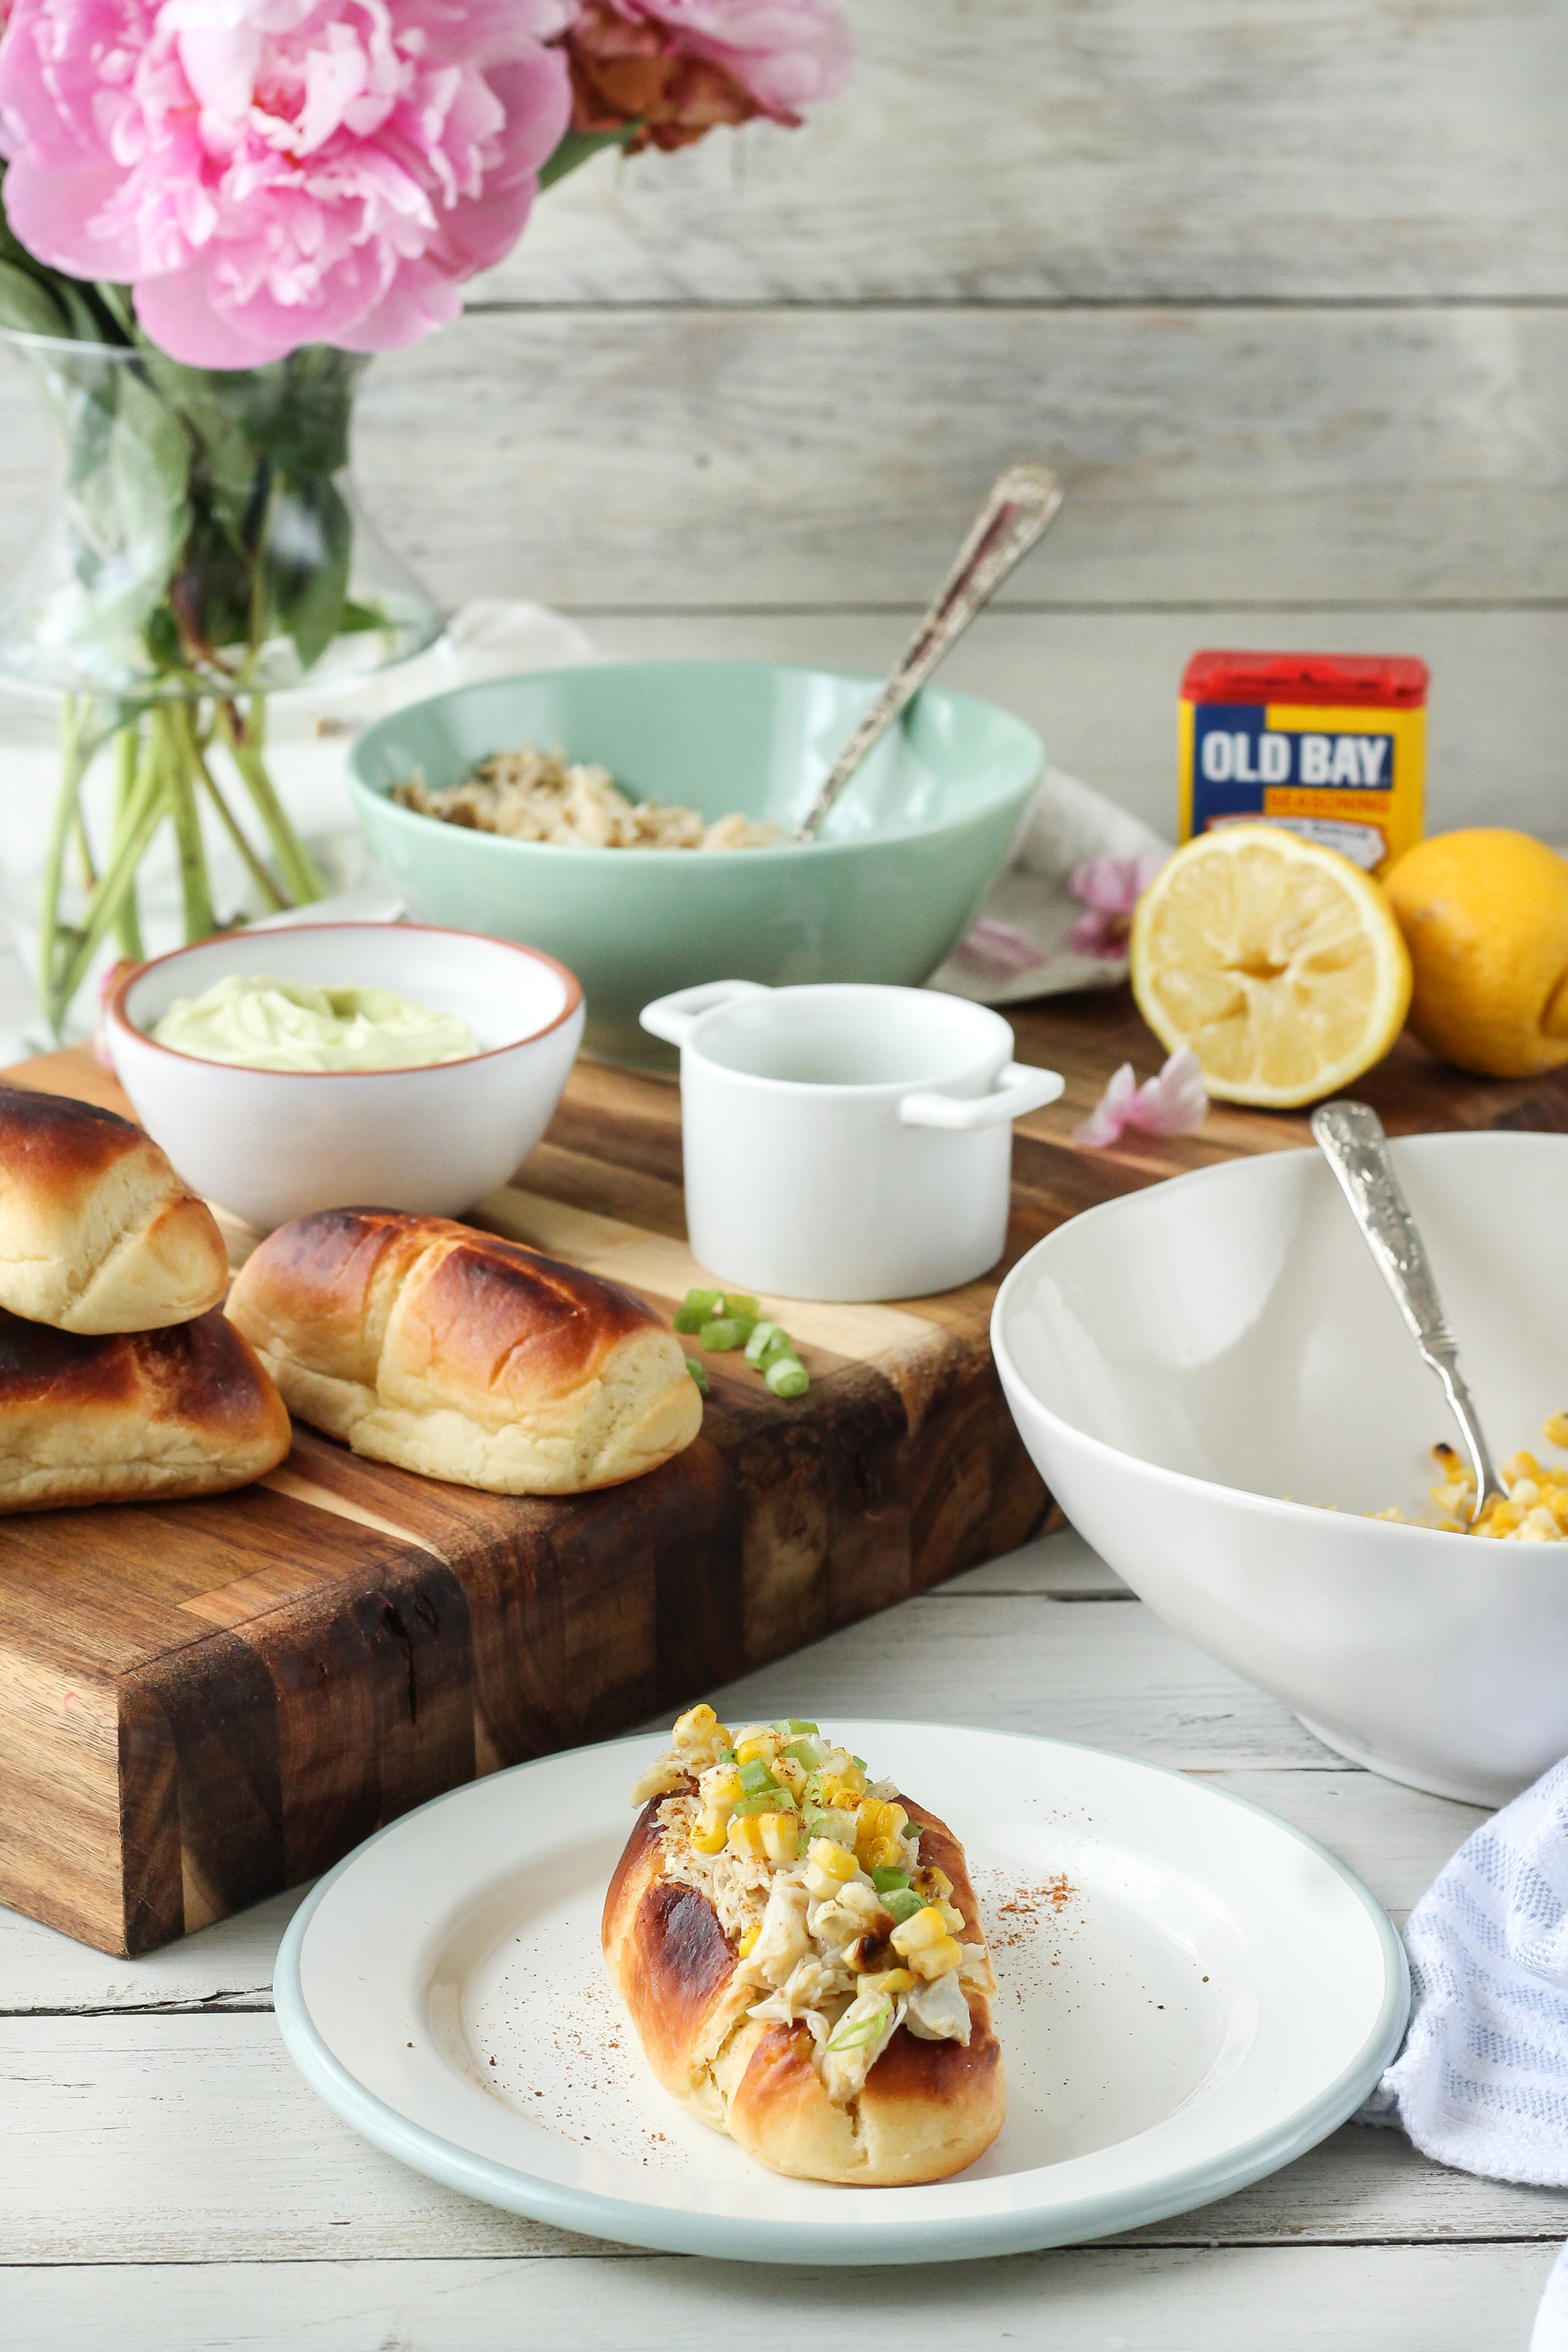 CRAB ROLLS with AVOCADO MAYONNAISE and ROASTED CORN have all the charms of a classic lobster roll but are even better!!  Find the recipe for this most perfect summer dinner on WWW.PEDANTICFOODIE.COM!